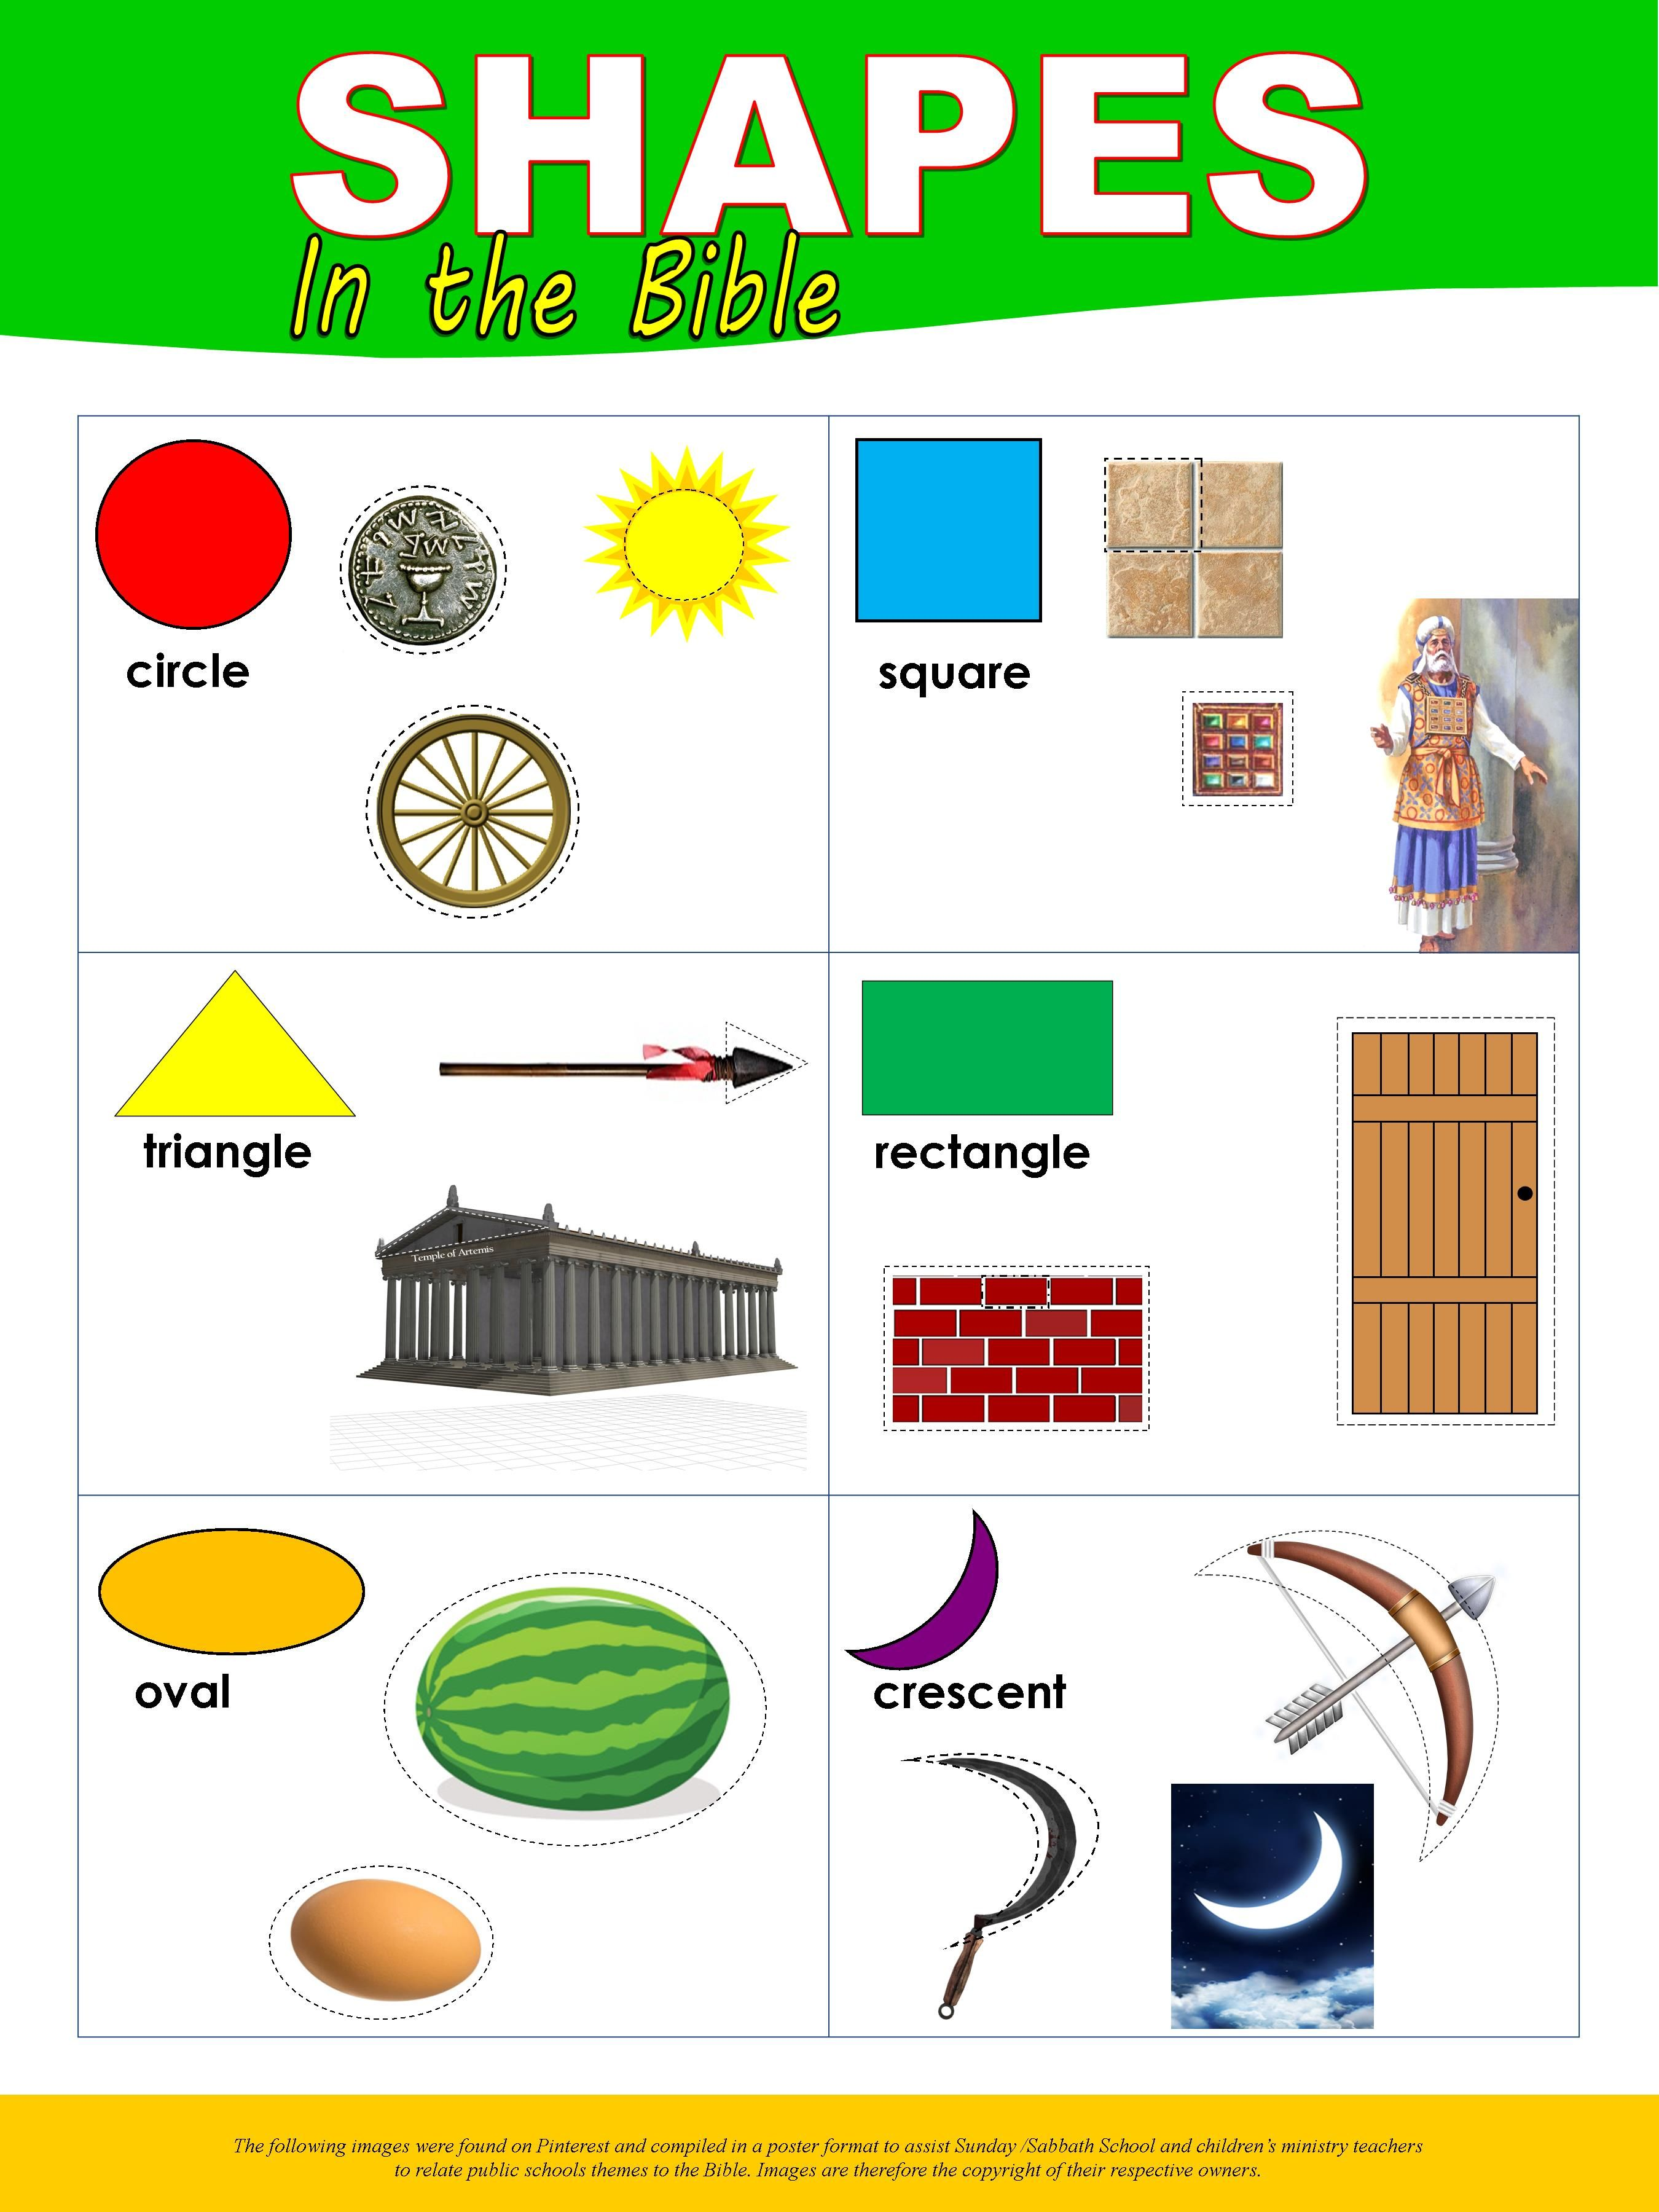 What Were The Shapes Some Of The Things Persons Used In